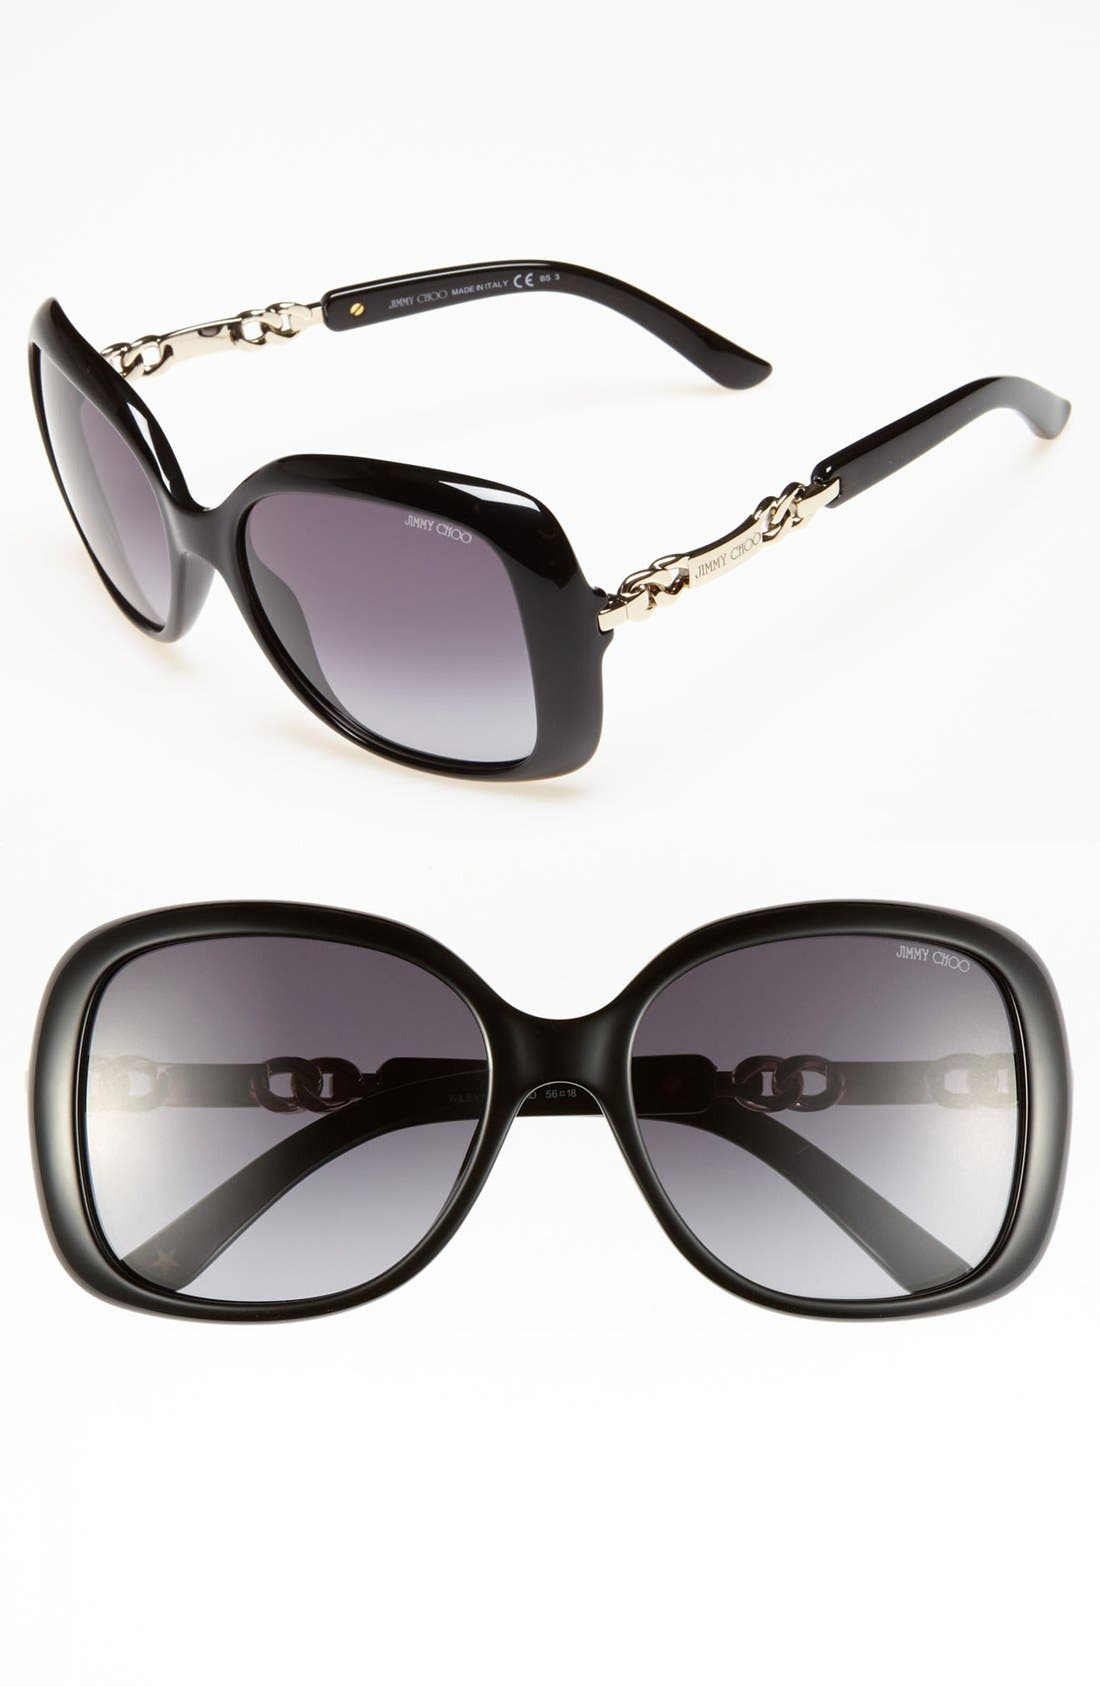 Main Image - Jimmy Choo 'Wiley' 56mm Sunglasses